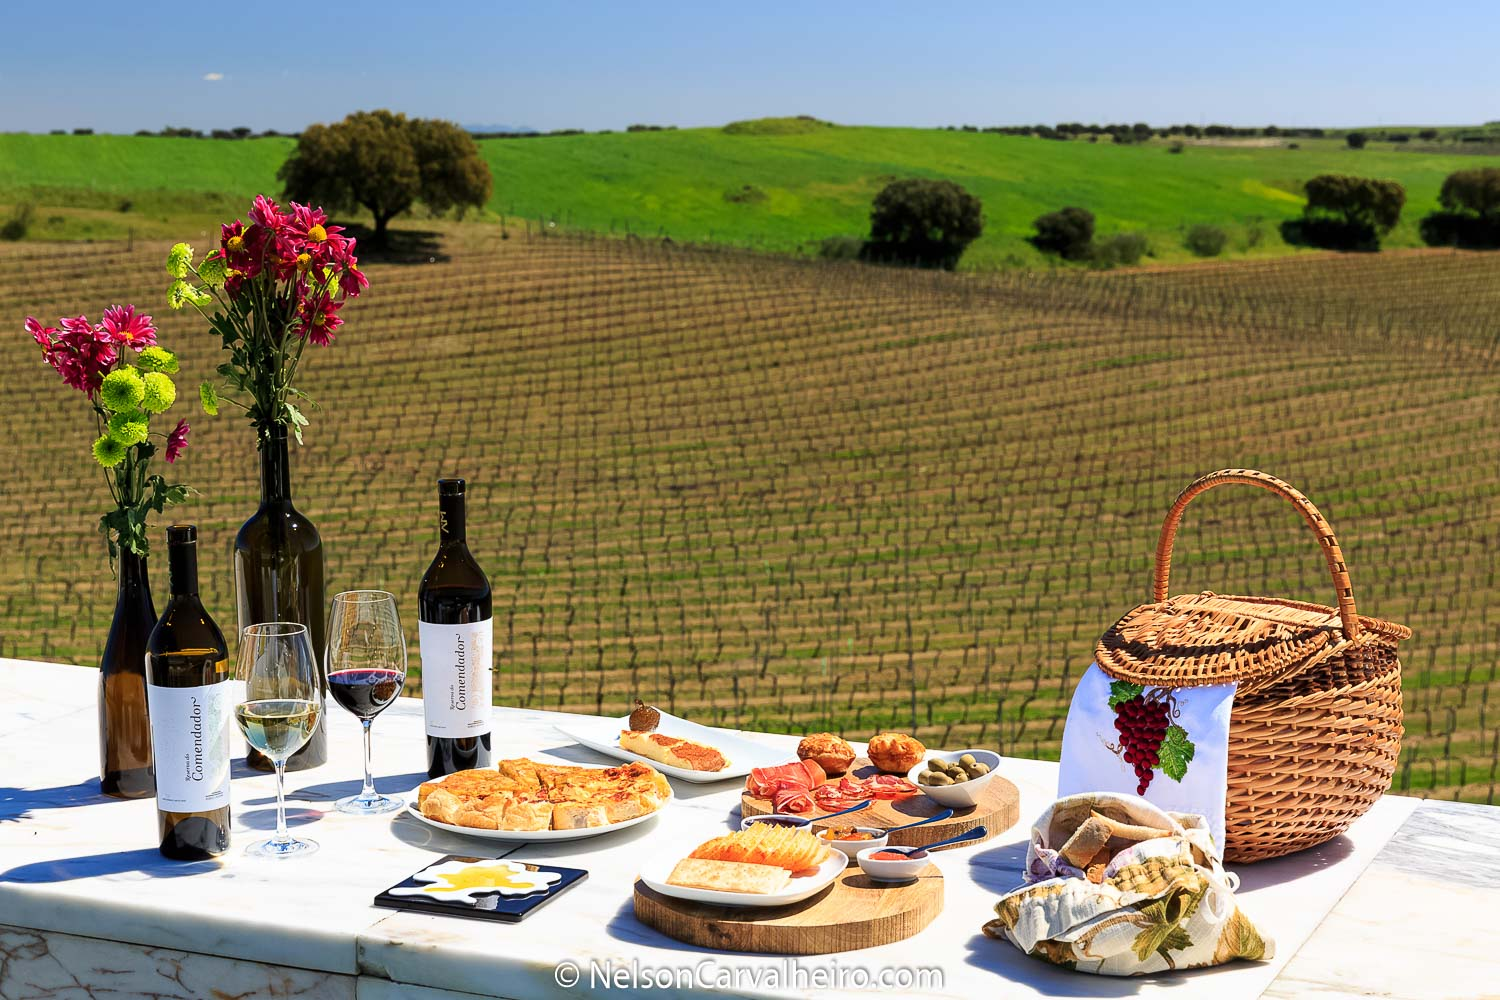 Nelson_Carvalheiro_Alentejo_Wine_Travel_Guide_Adega_Mayor-10